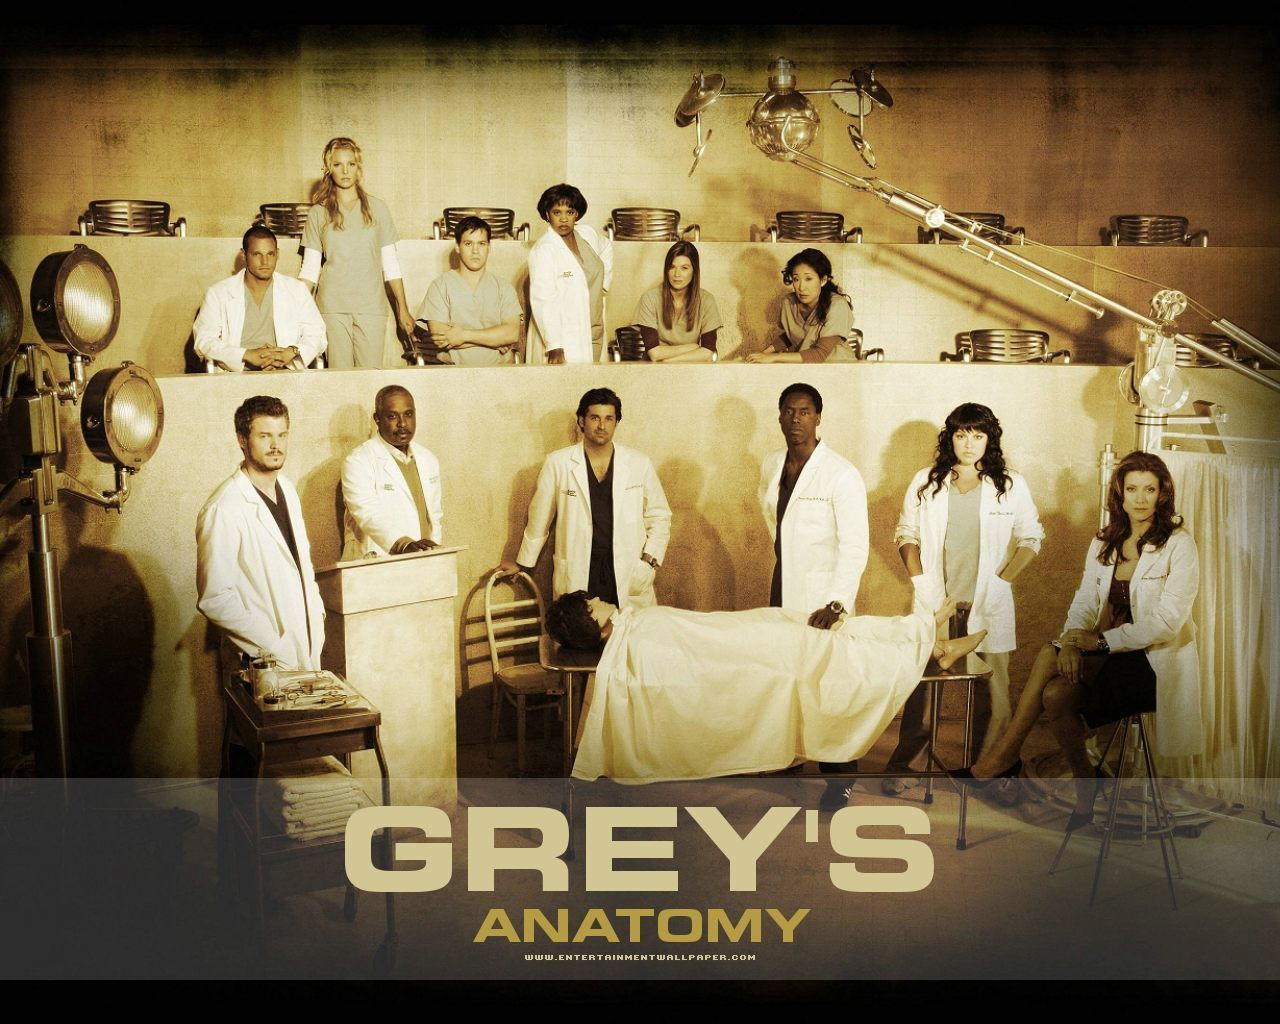 Grey's anatomy - Grey's Anatomy Wallpaper (7569716) - Fanpop